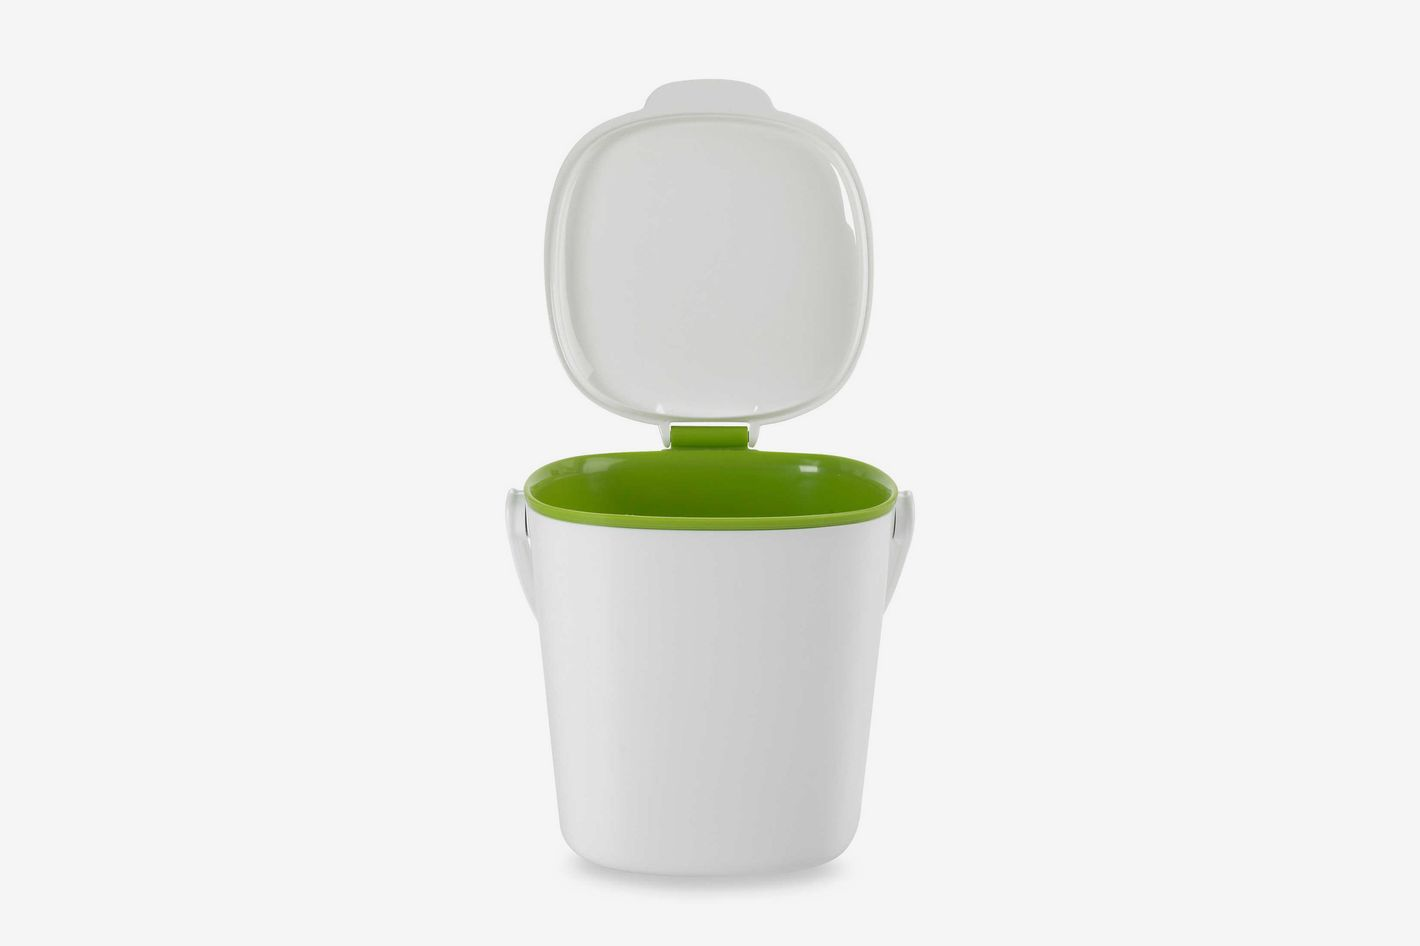 Oxo Good Grips Compost Bin At Bed Bath Beyond